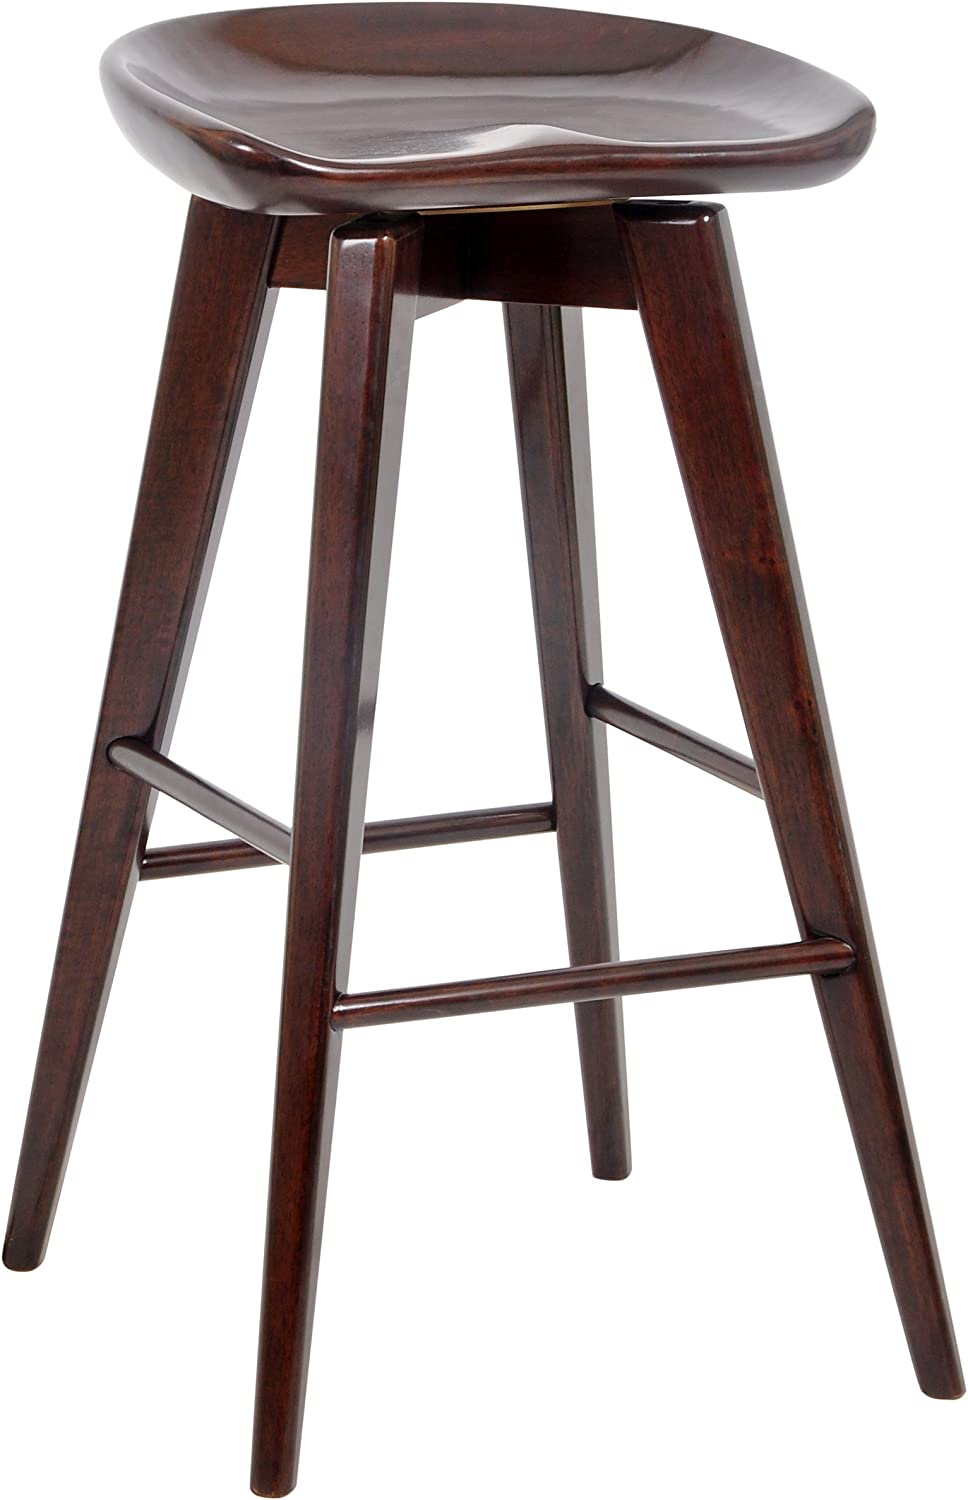 bali bar height swivel stool review, buy best backless bar stool online